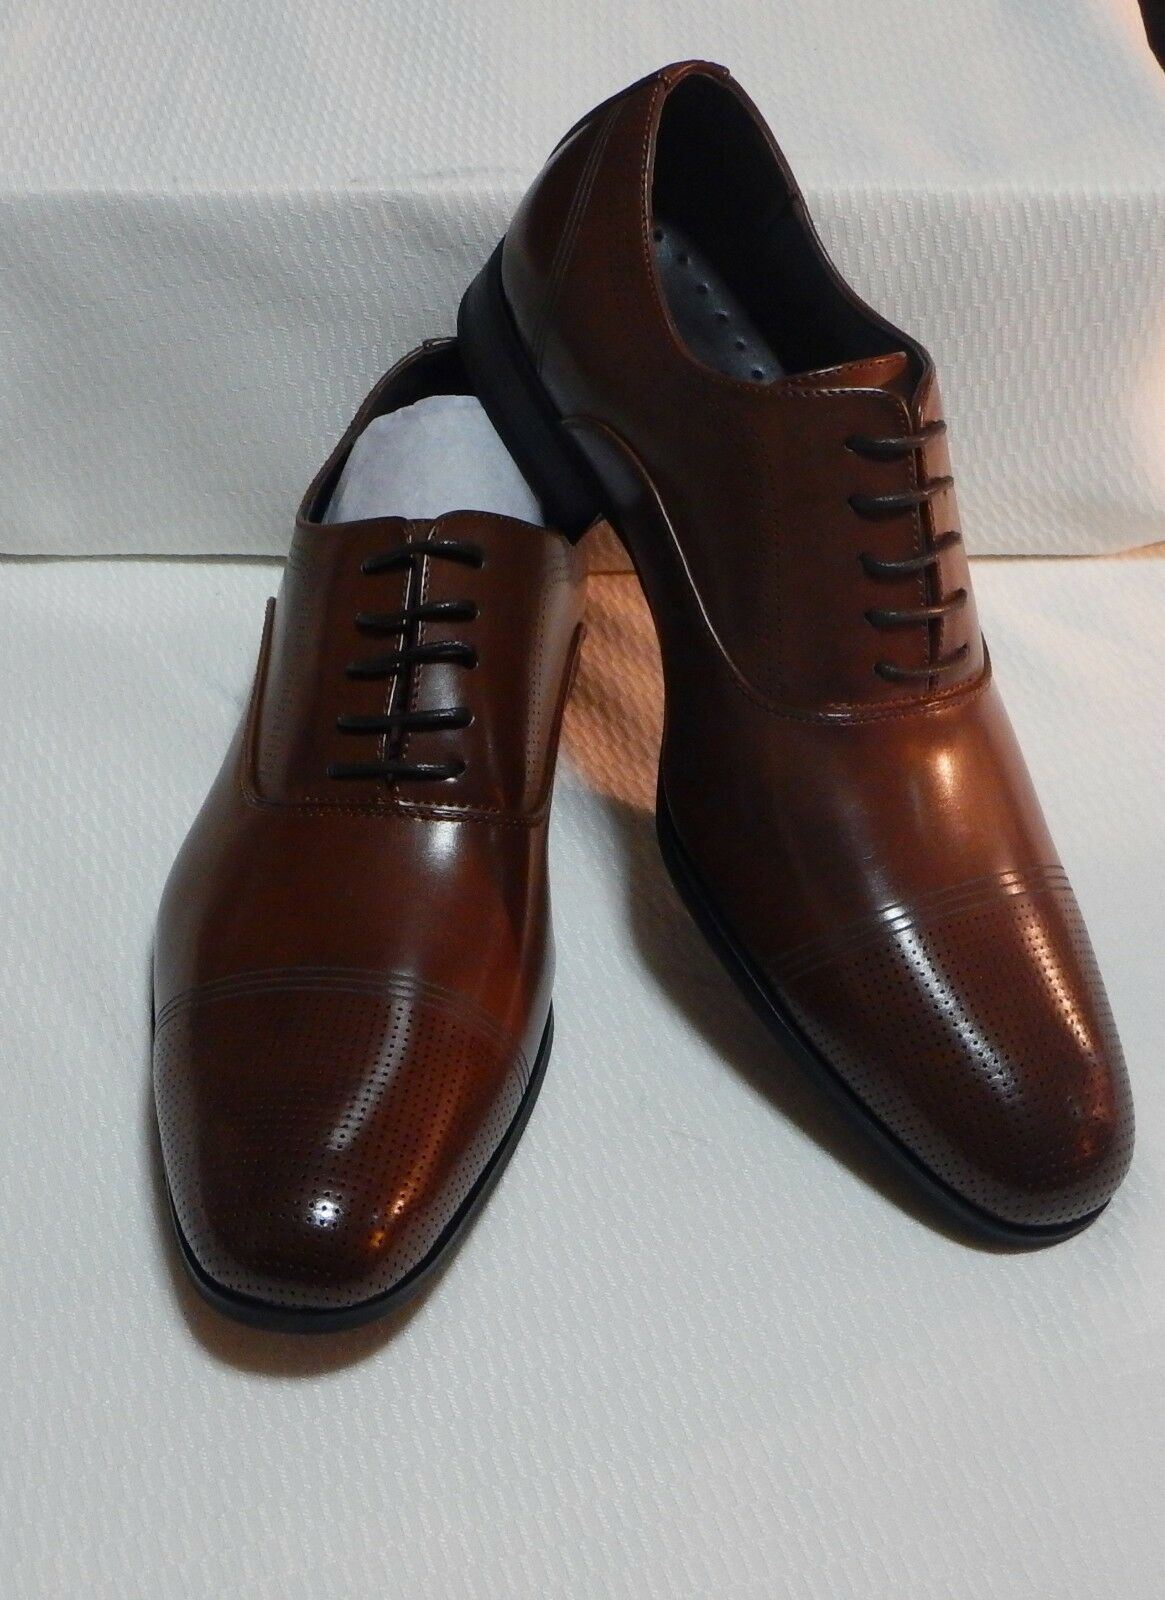 KENNETH COLE CAP TOE OXFORD( COGNAC ) NEW WITH BOX SIZE 12 M  #1965-3